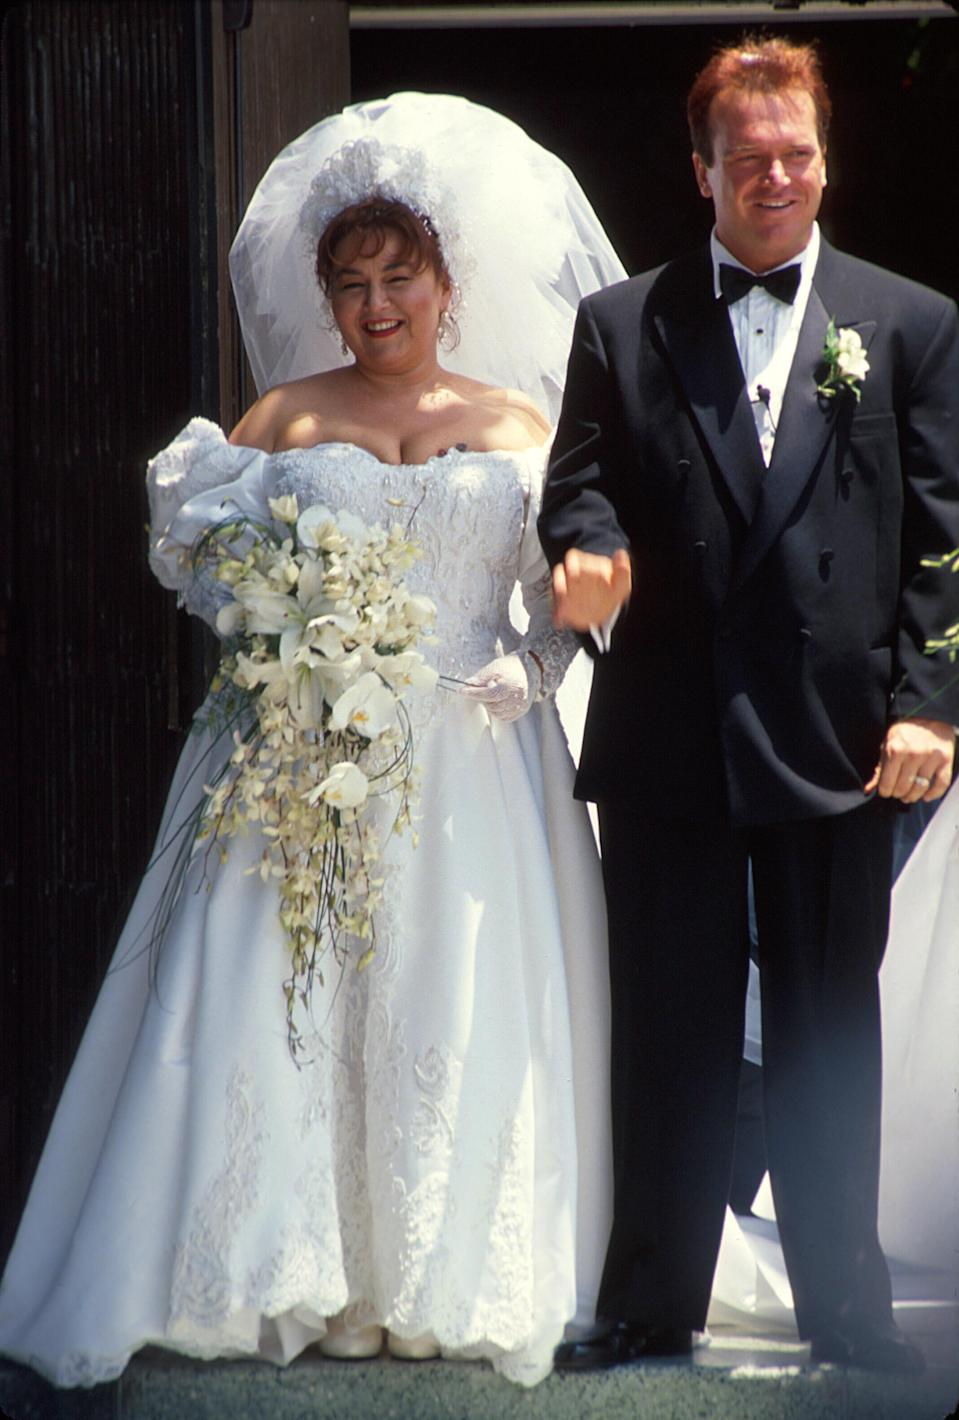 Roseanne Barr and Tom Arnold on their wedding day in 1991. (Photo: Time Life Pictures/DMI/The LIFE Picture Collection/Getty Images)